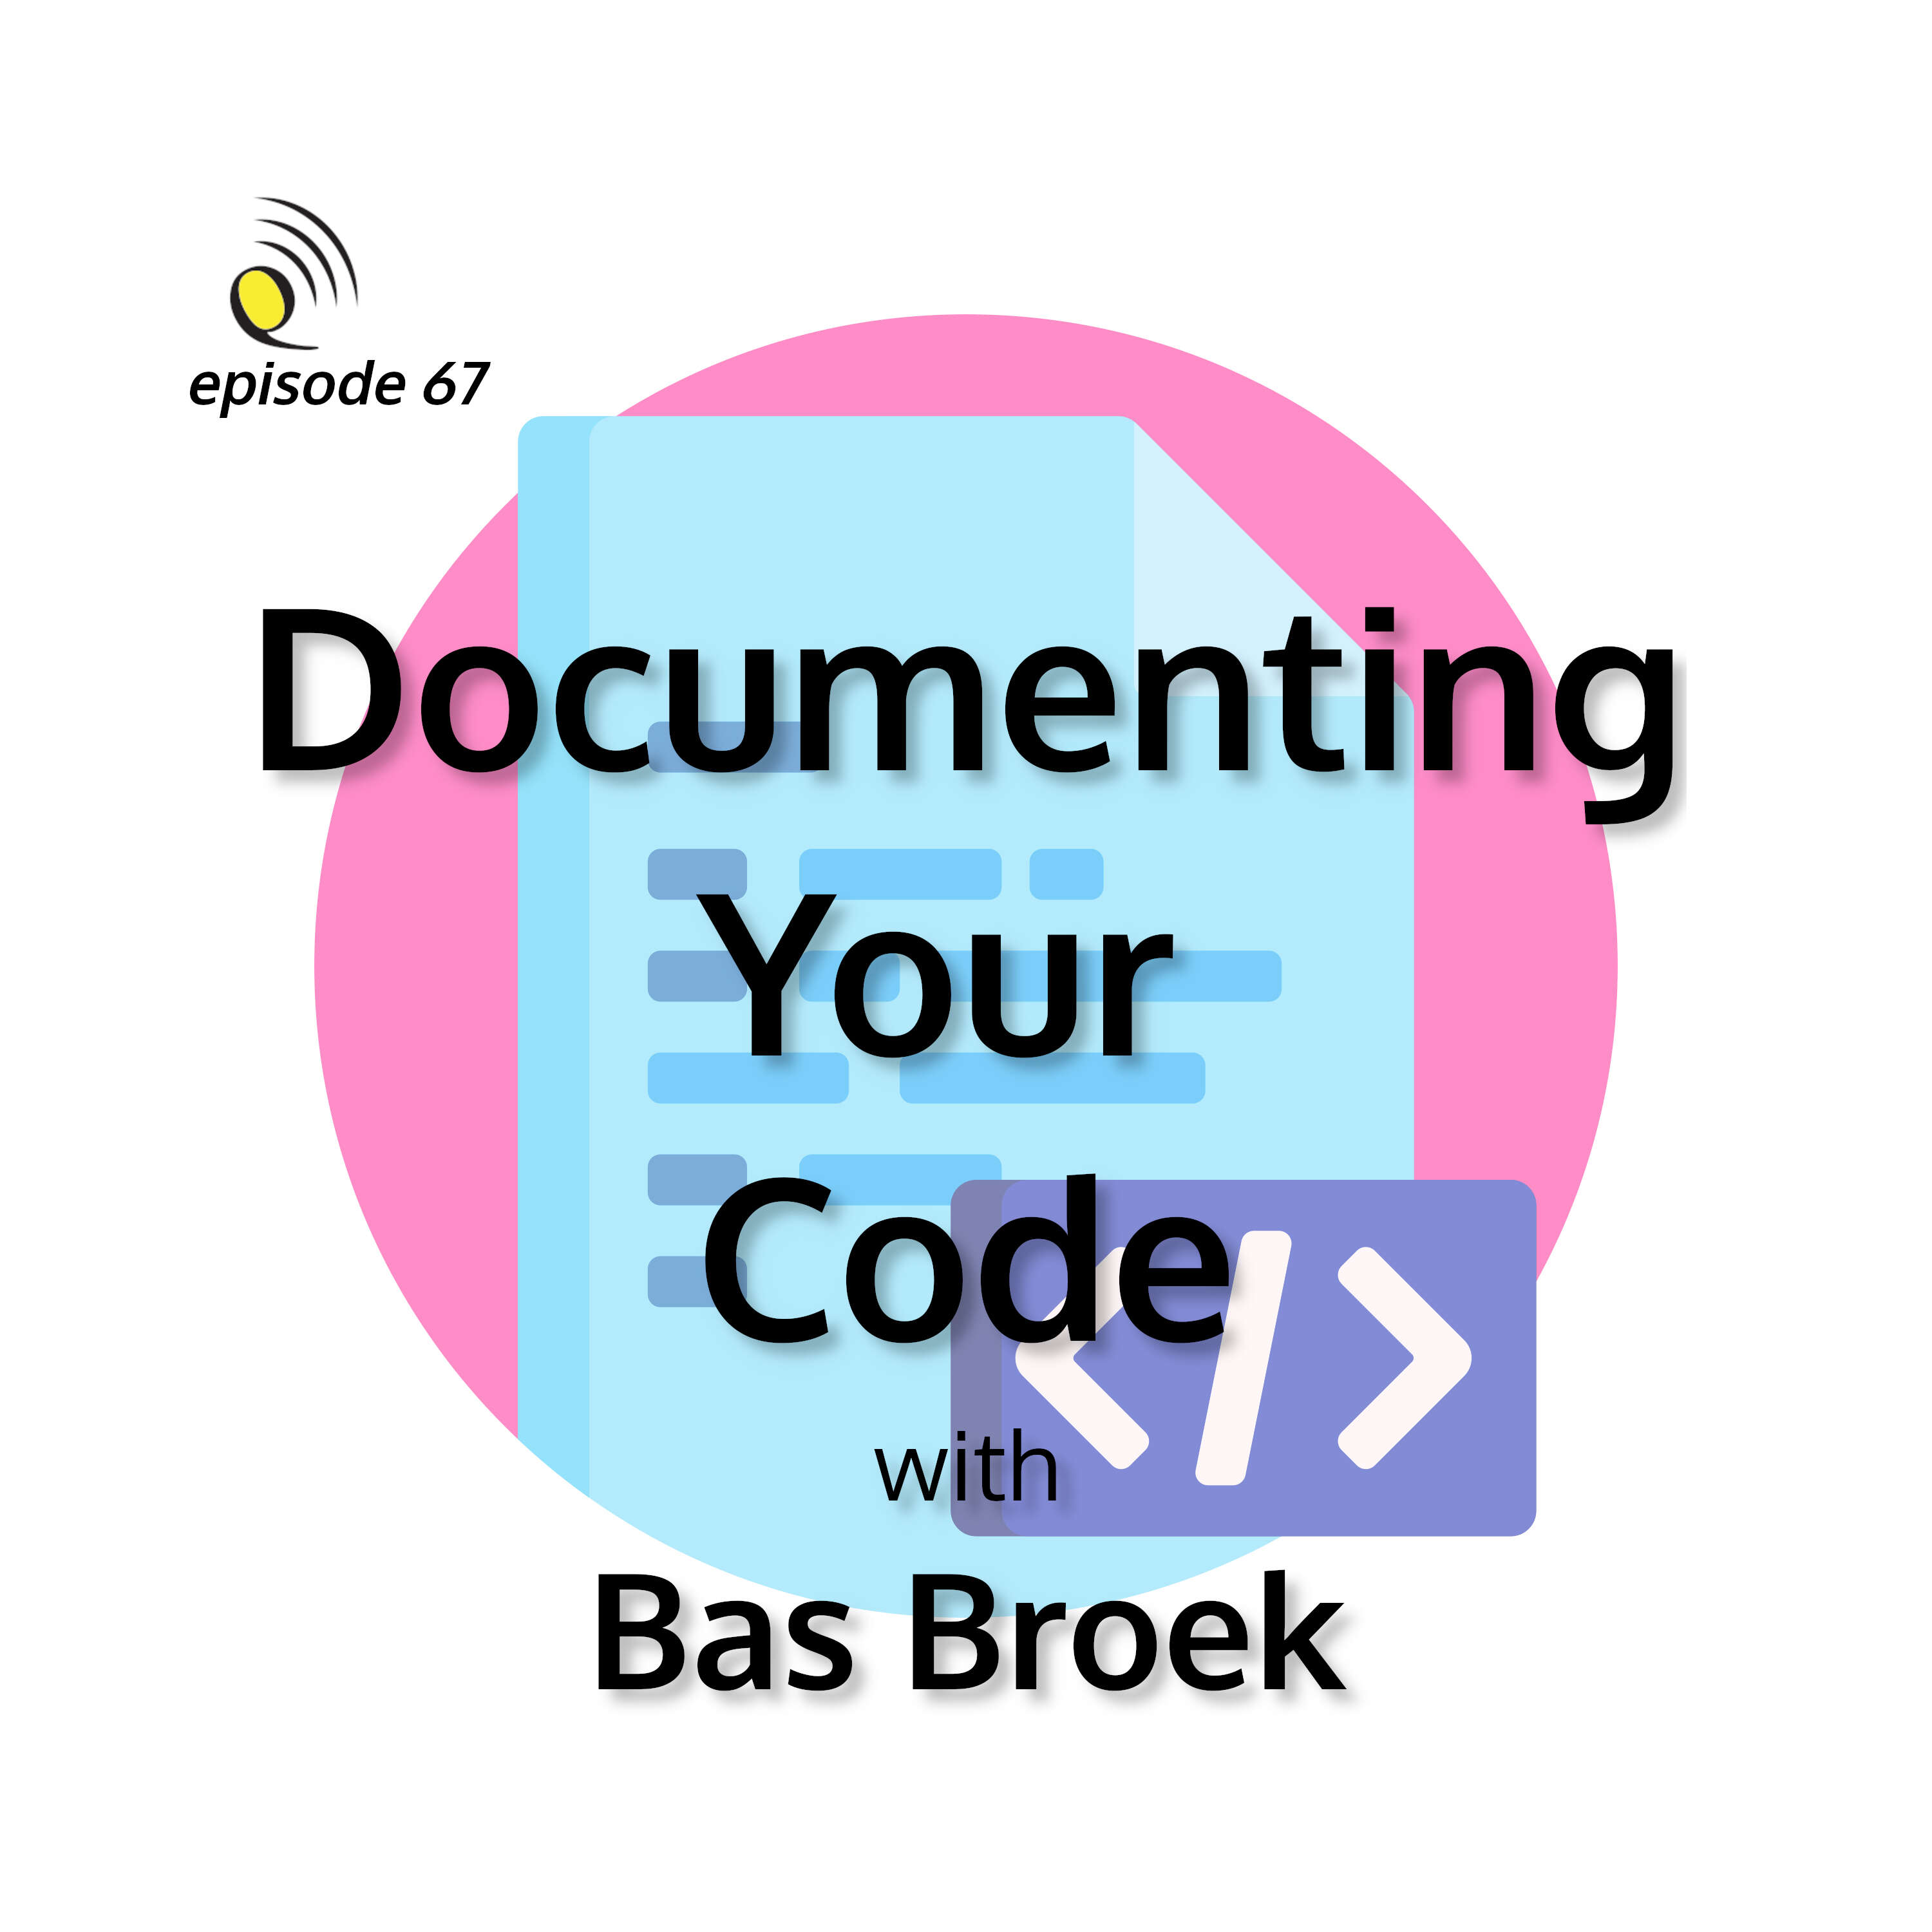 Documenting Your Code with Bas Broek